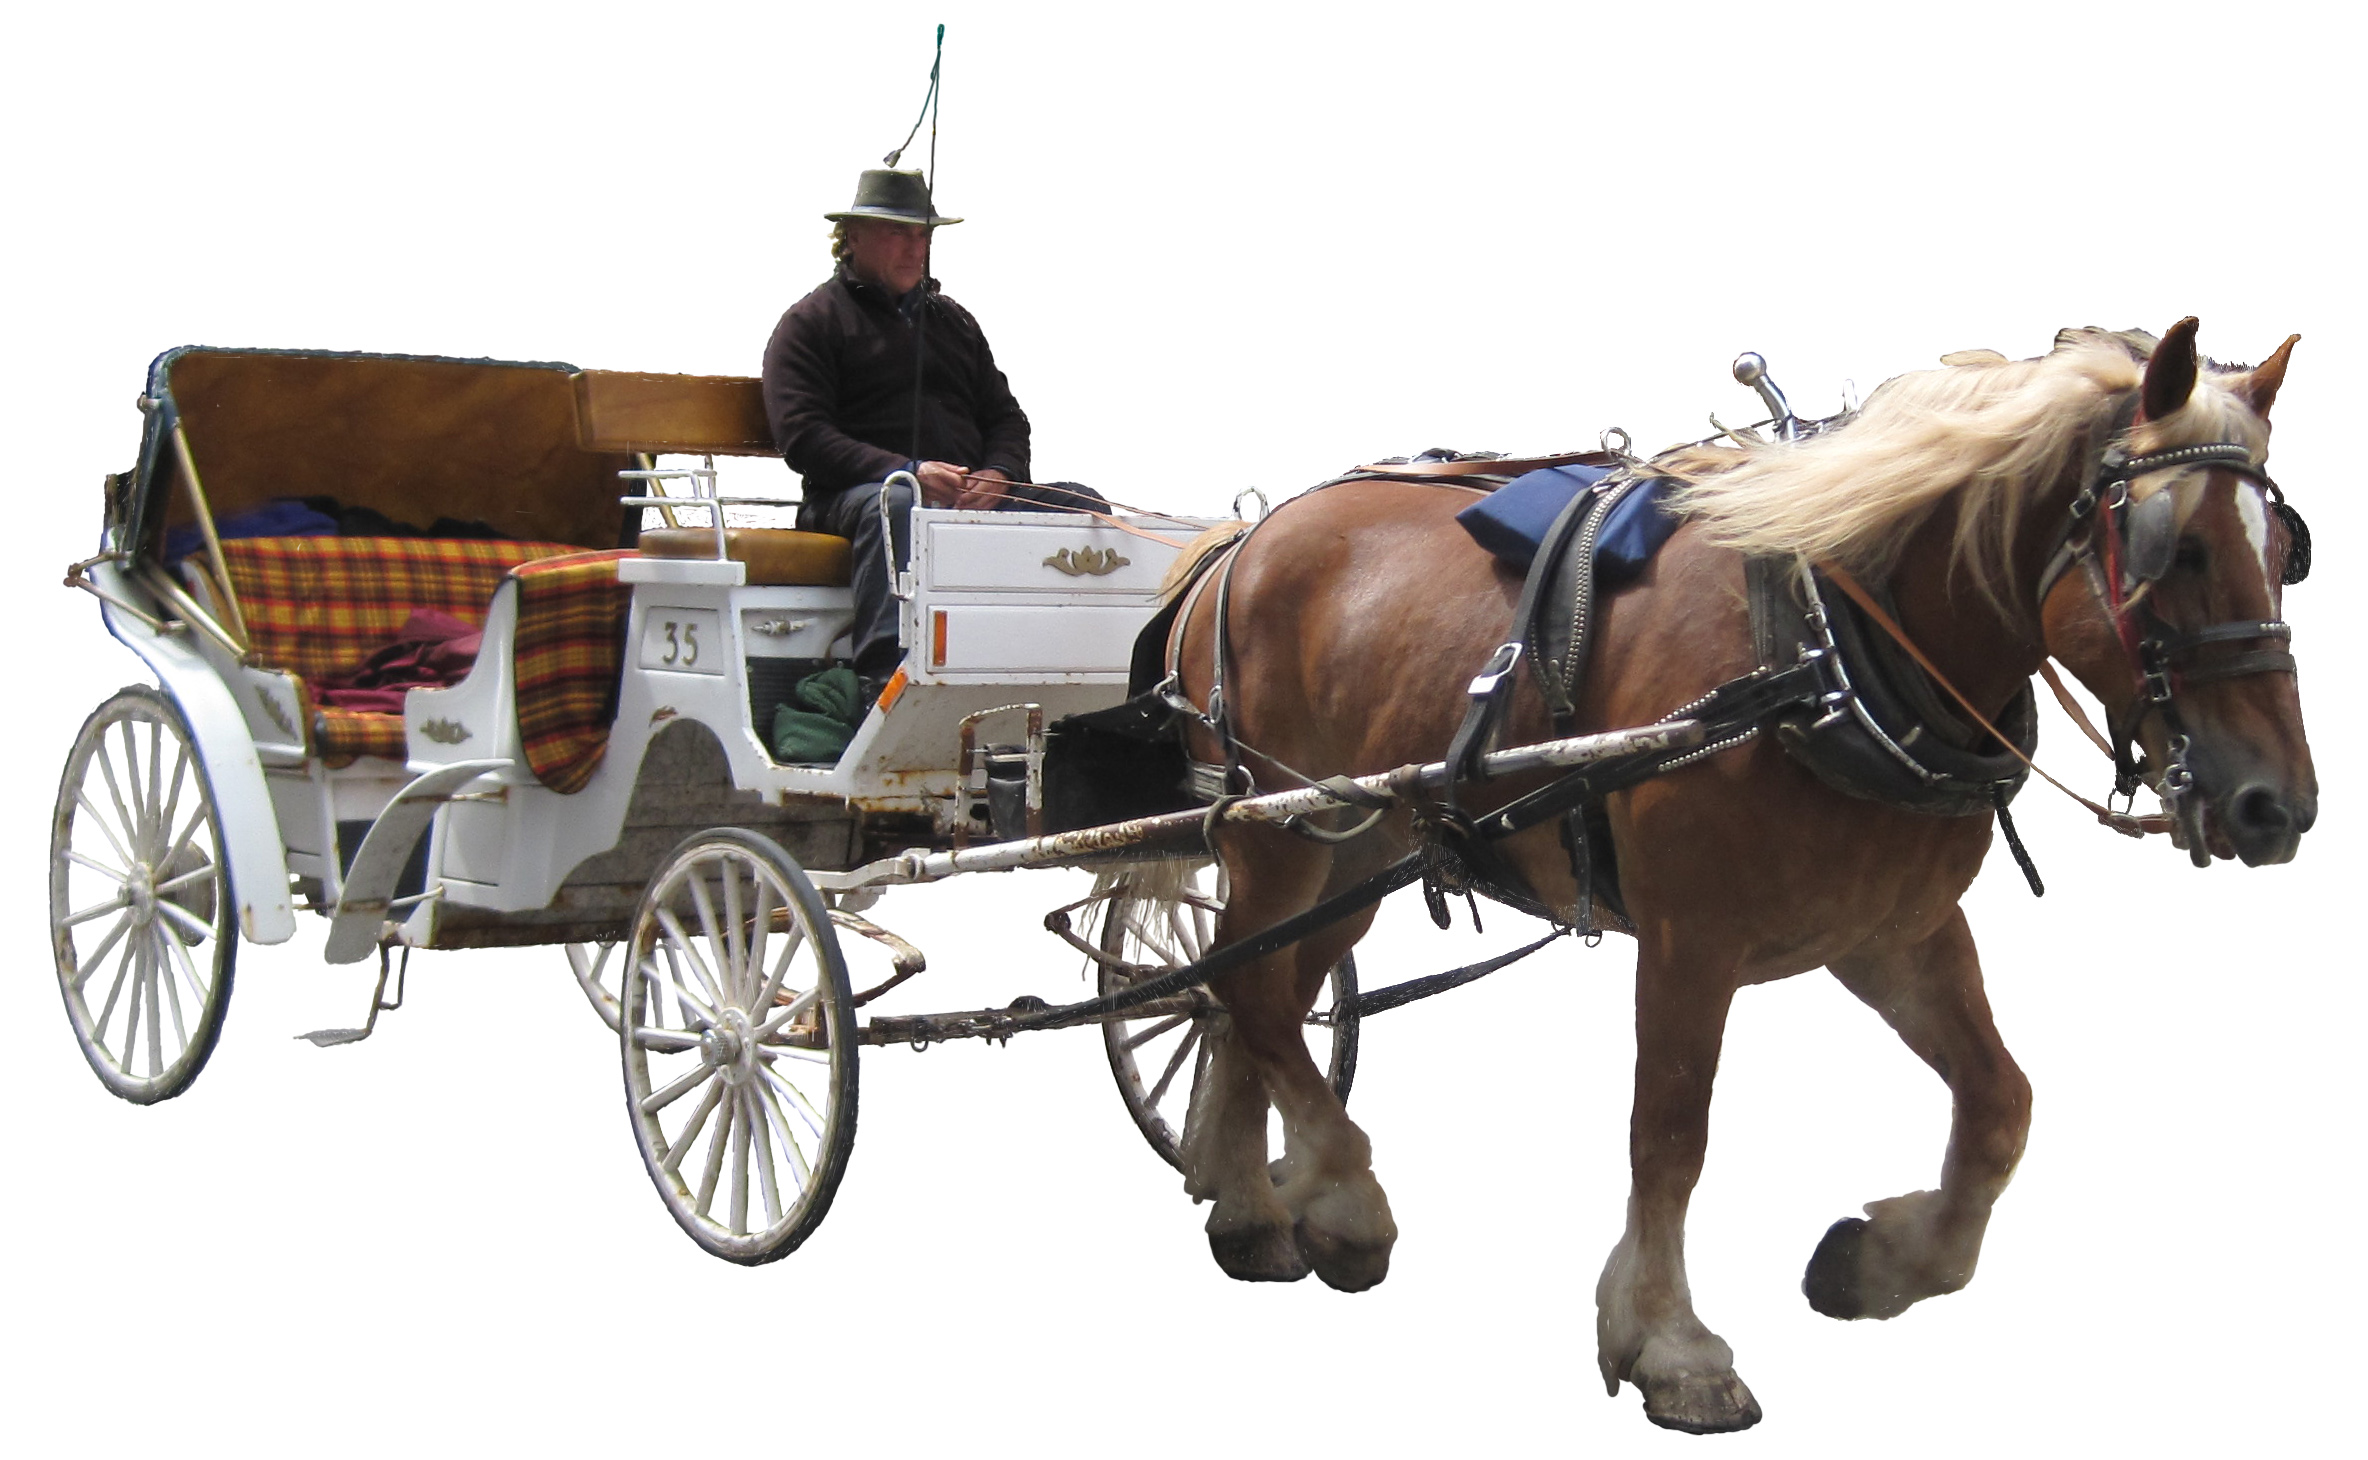 Vehicles - Horse Drawn Vehicle Carriage Wallpaper - Horse Carriage PNG HD